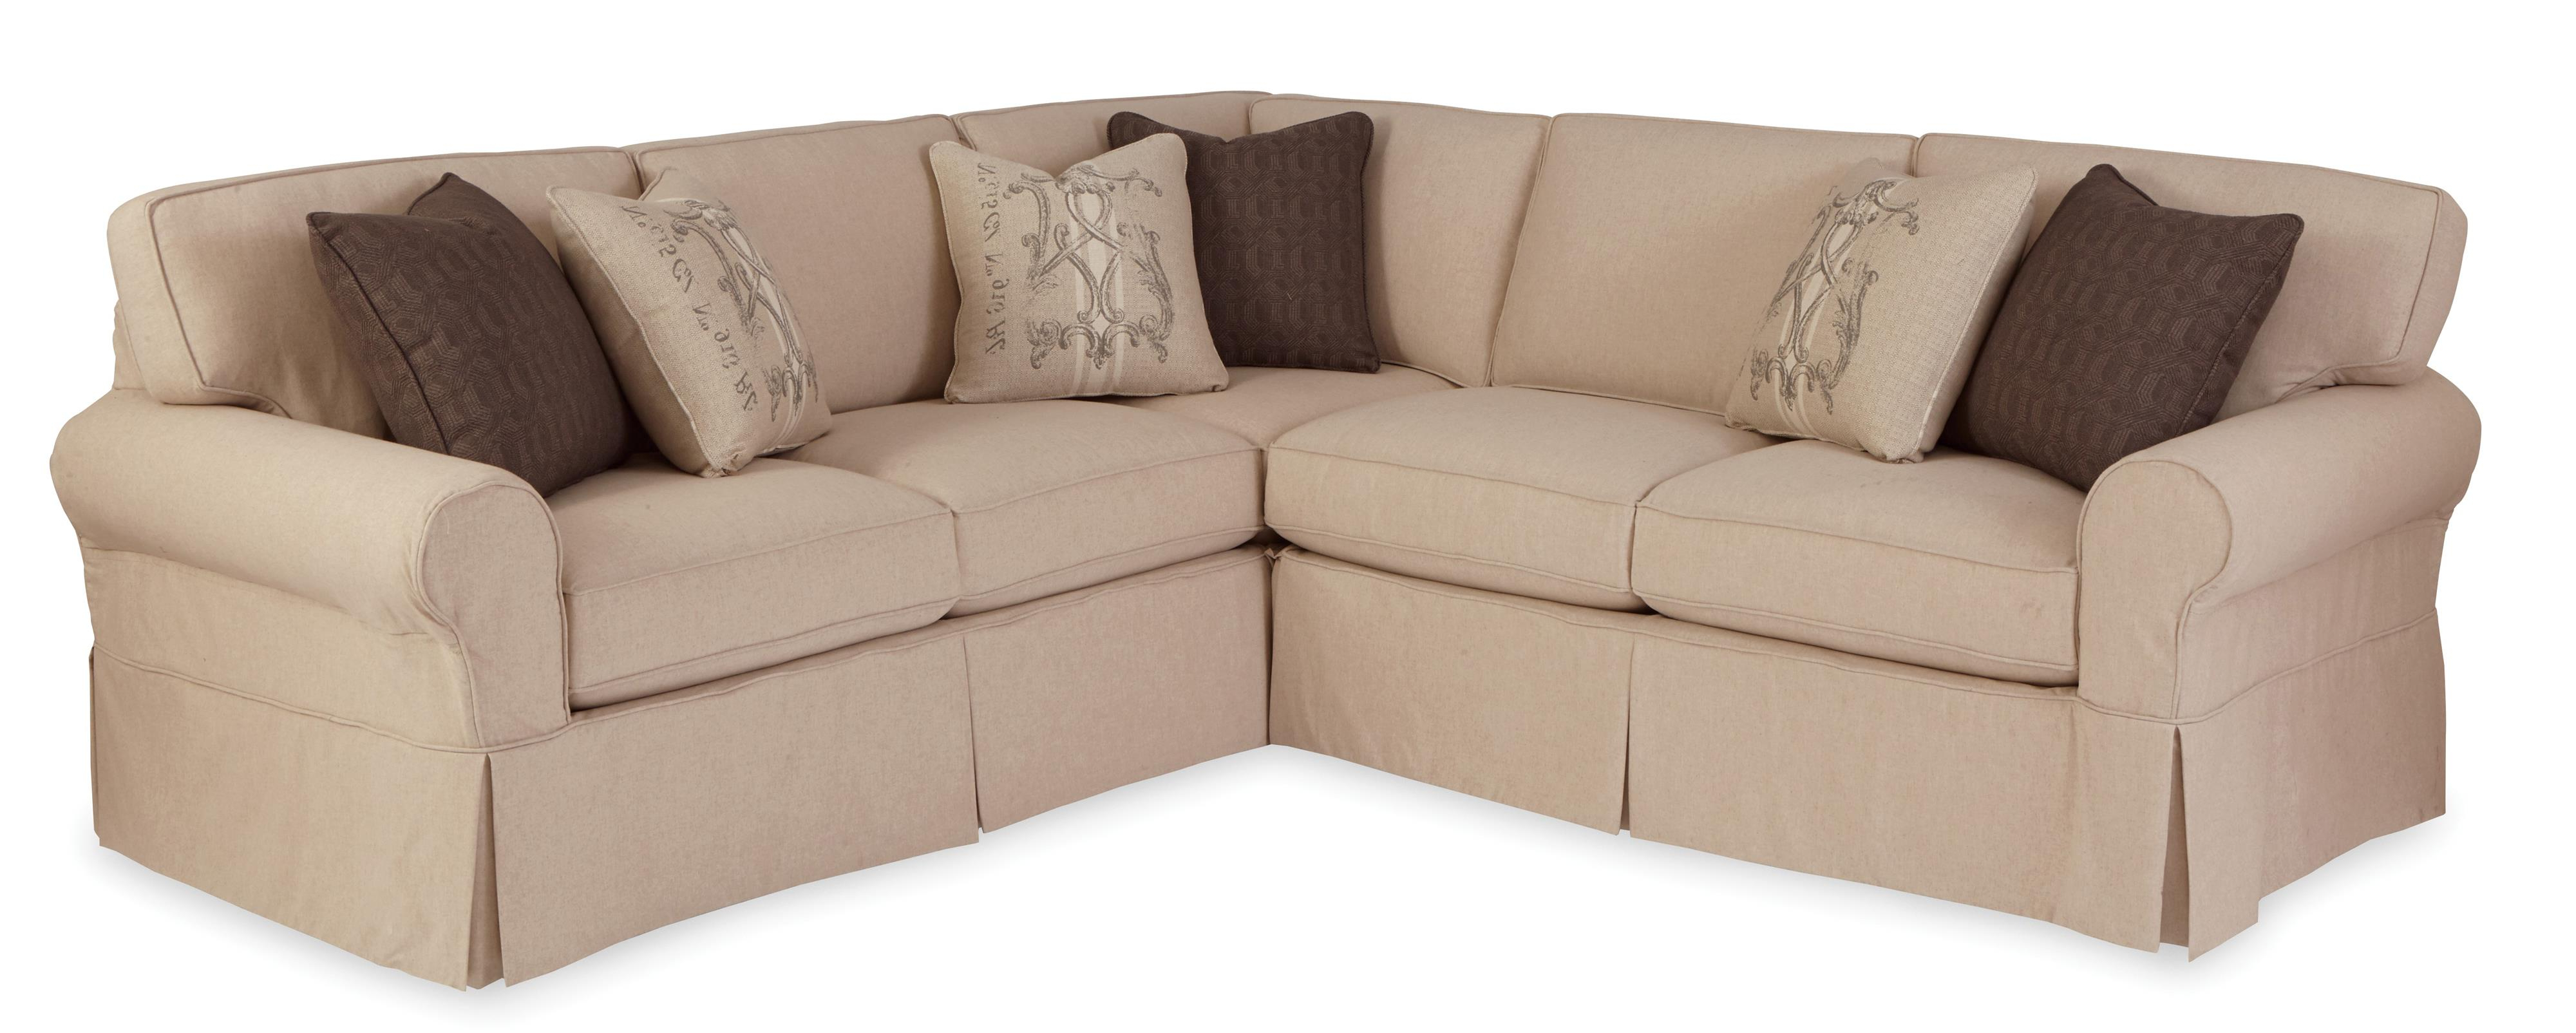 Josephine 2 Piece Sectionals With Laf Sofa In Recent Craftmaster 9228 Two Piece Slipcovered Sectional Sofa With Raf (View 7 of 20)